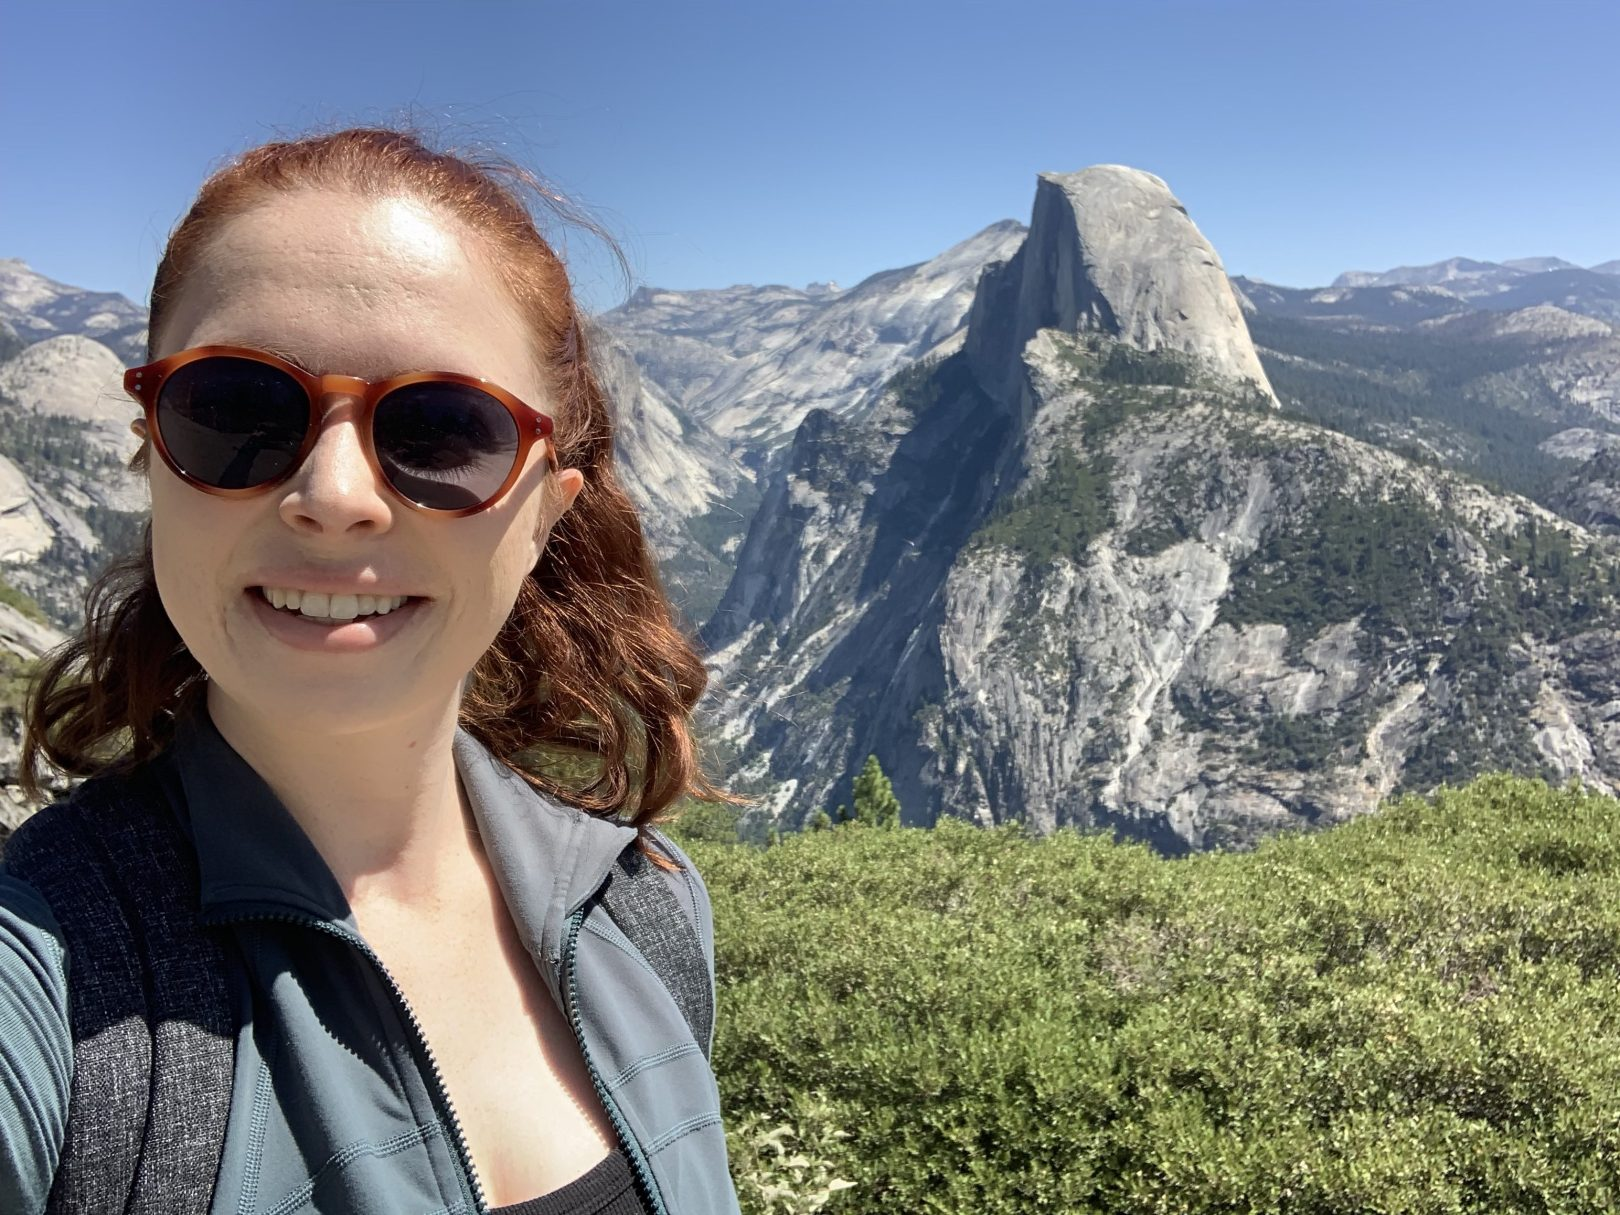 Selfie of the author wearing sunglasses, a backpack, and athletic clothes with gray mountains and greenery in the background.